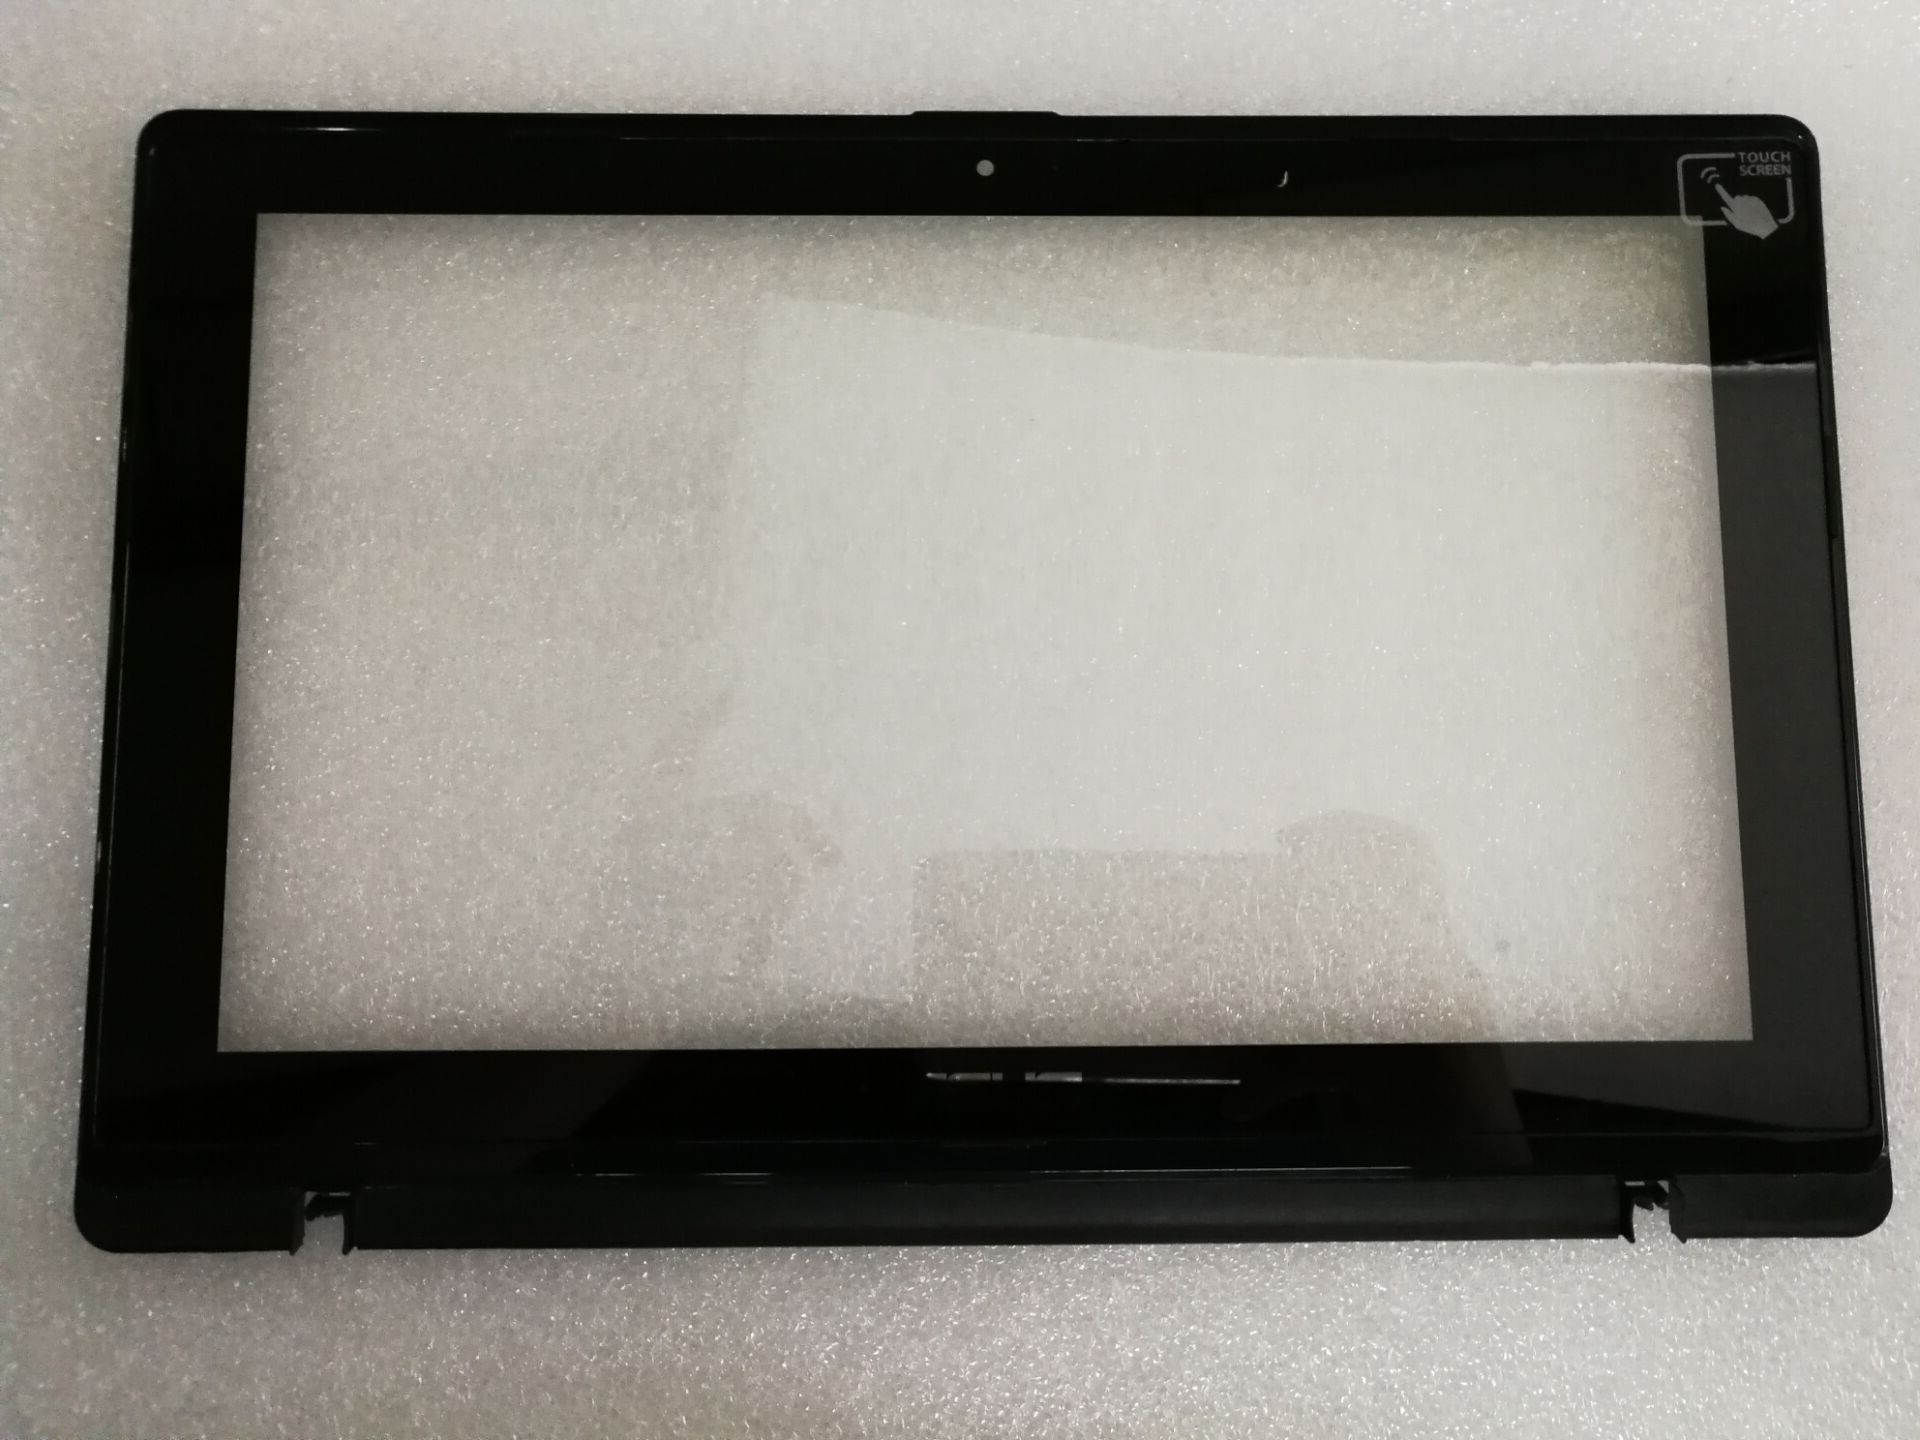 For Asus Vivobook X200MA X200CA X200LA Digitizer Touch Screen Glass with Frame TCP11F16 V1.1 13NB02X6AP0201